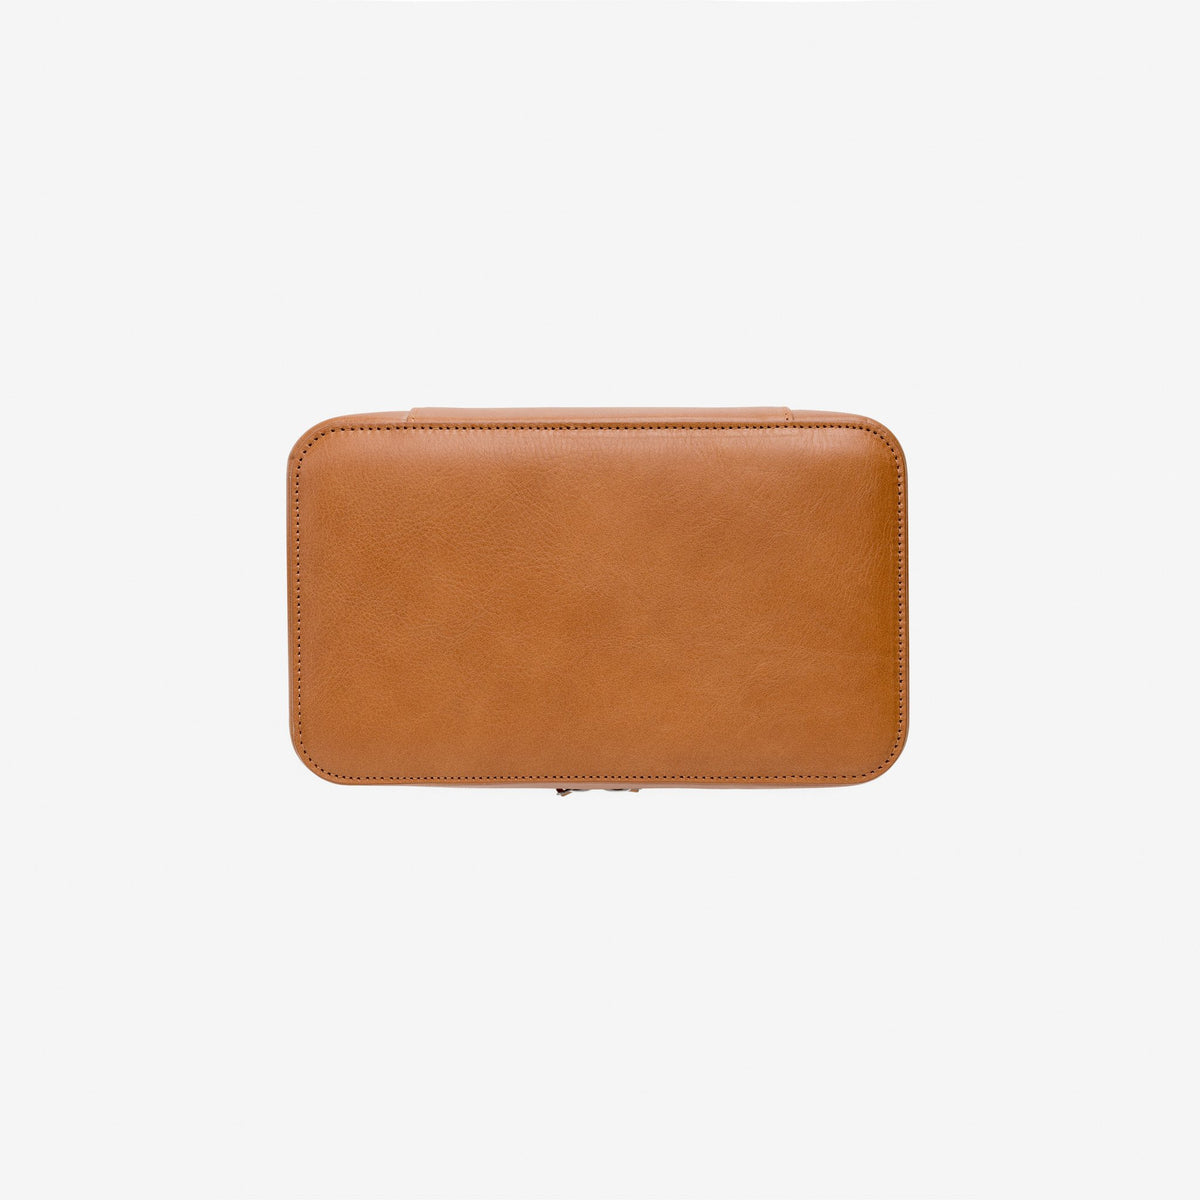 Tech Dopp Kit 2 - Regular - Toffee